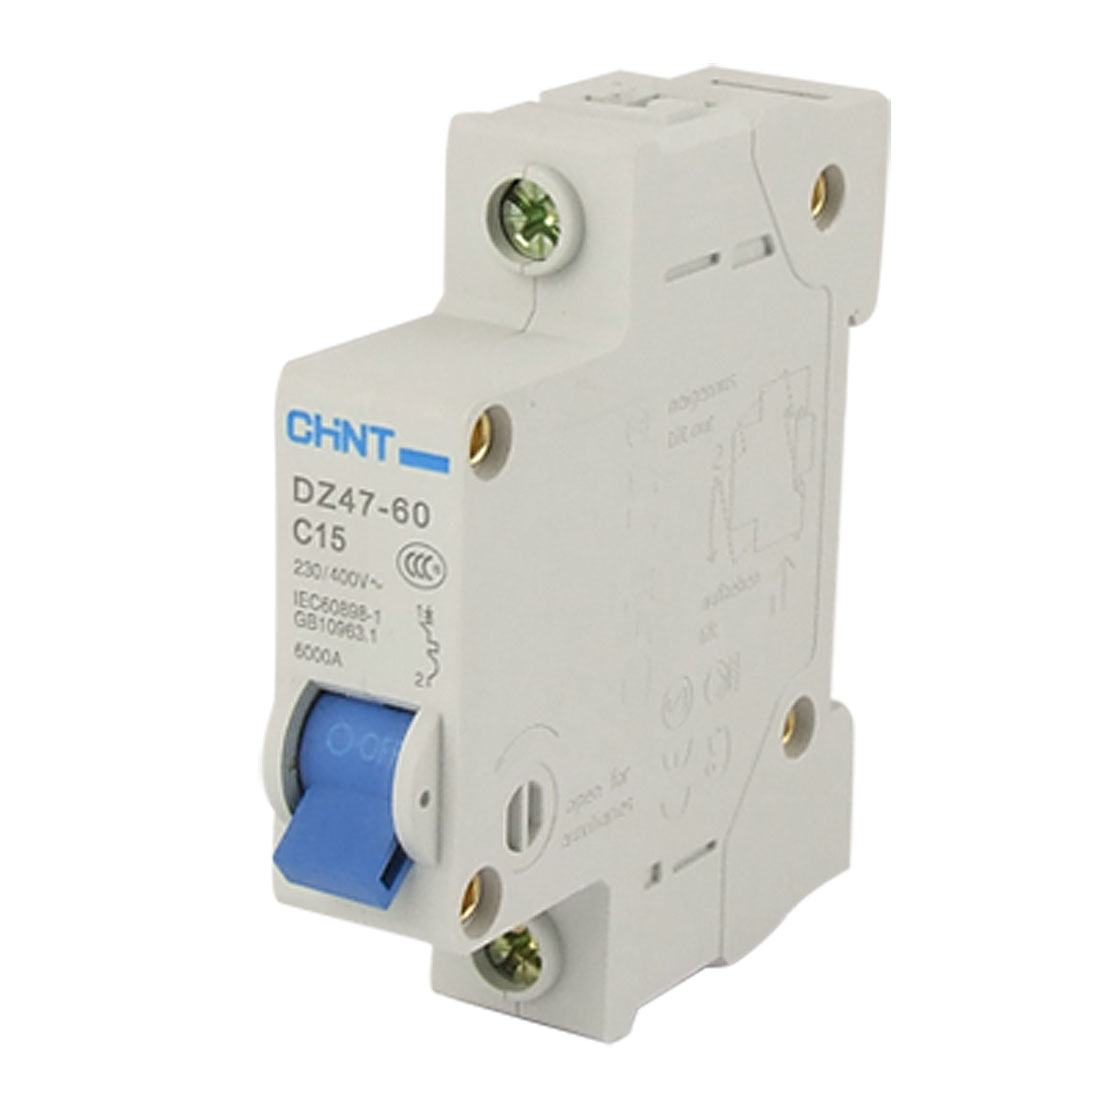 DZ47-60 15A Single Pole MCB Miniature Circuit Breaker